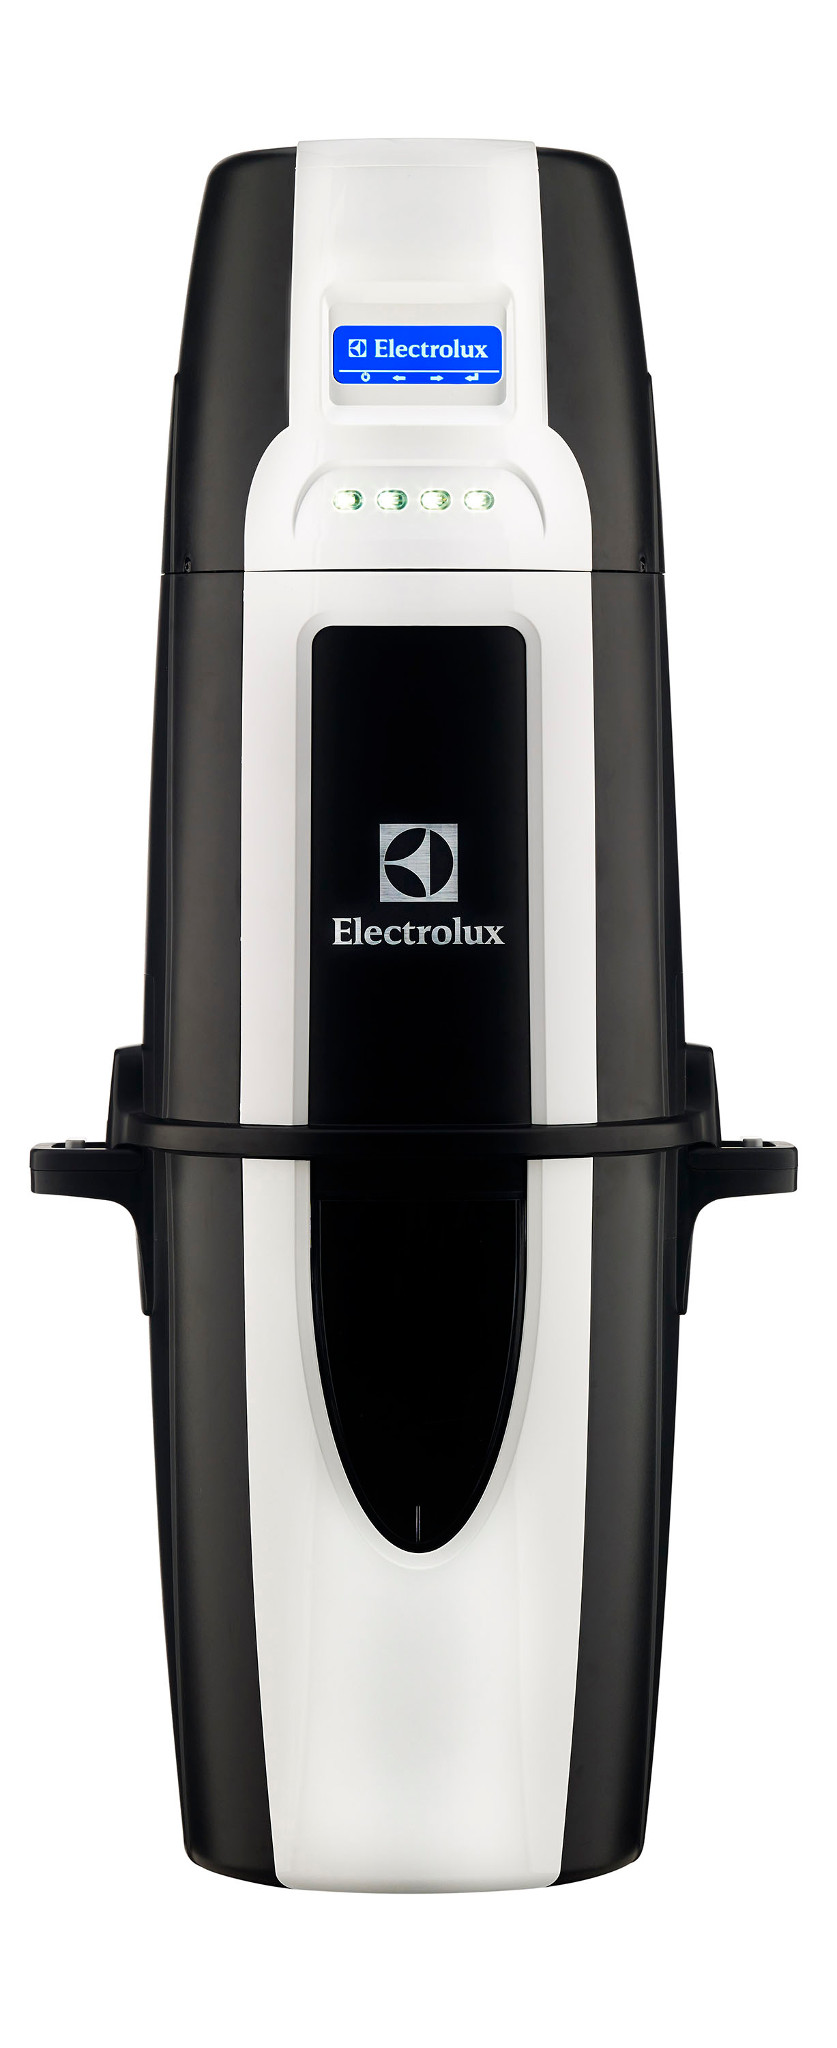 Electrolux Elx700 The Vacuum District